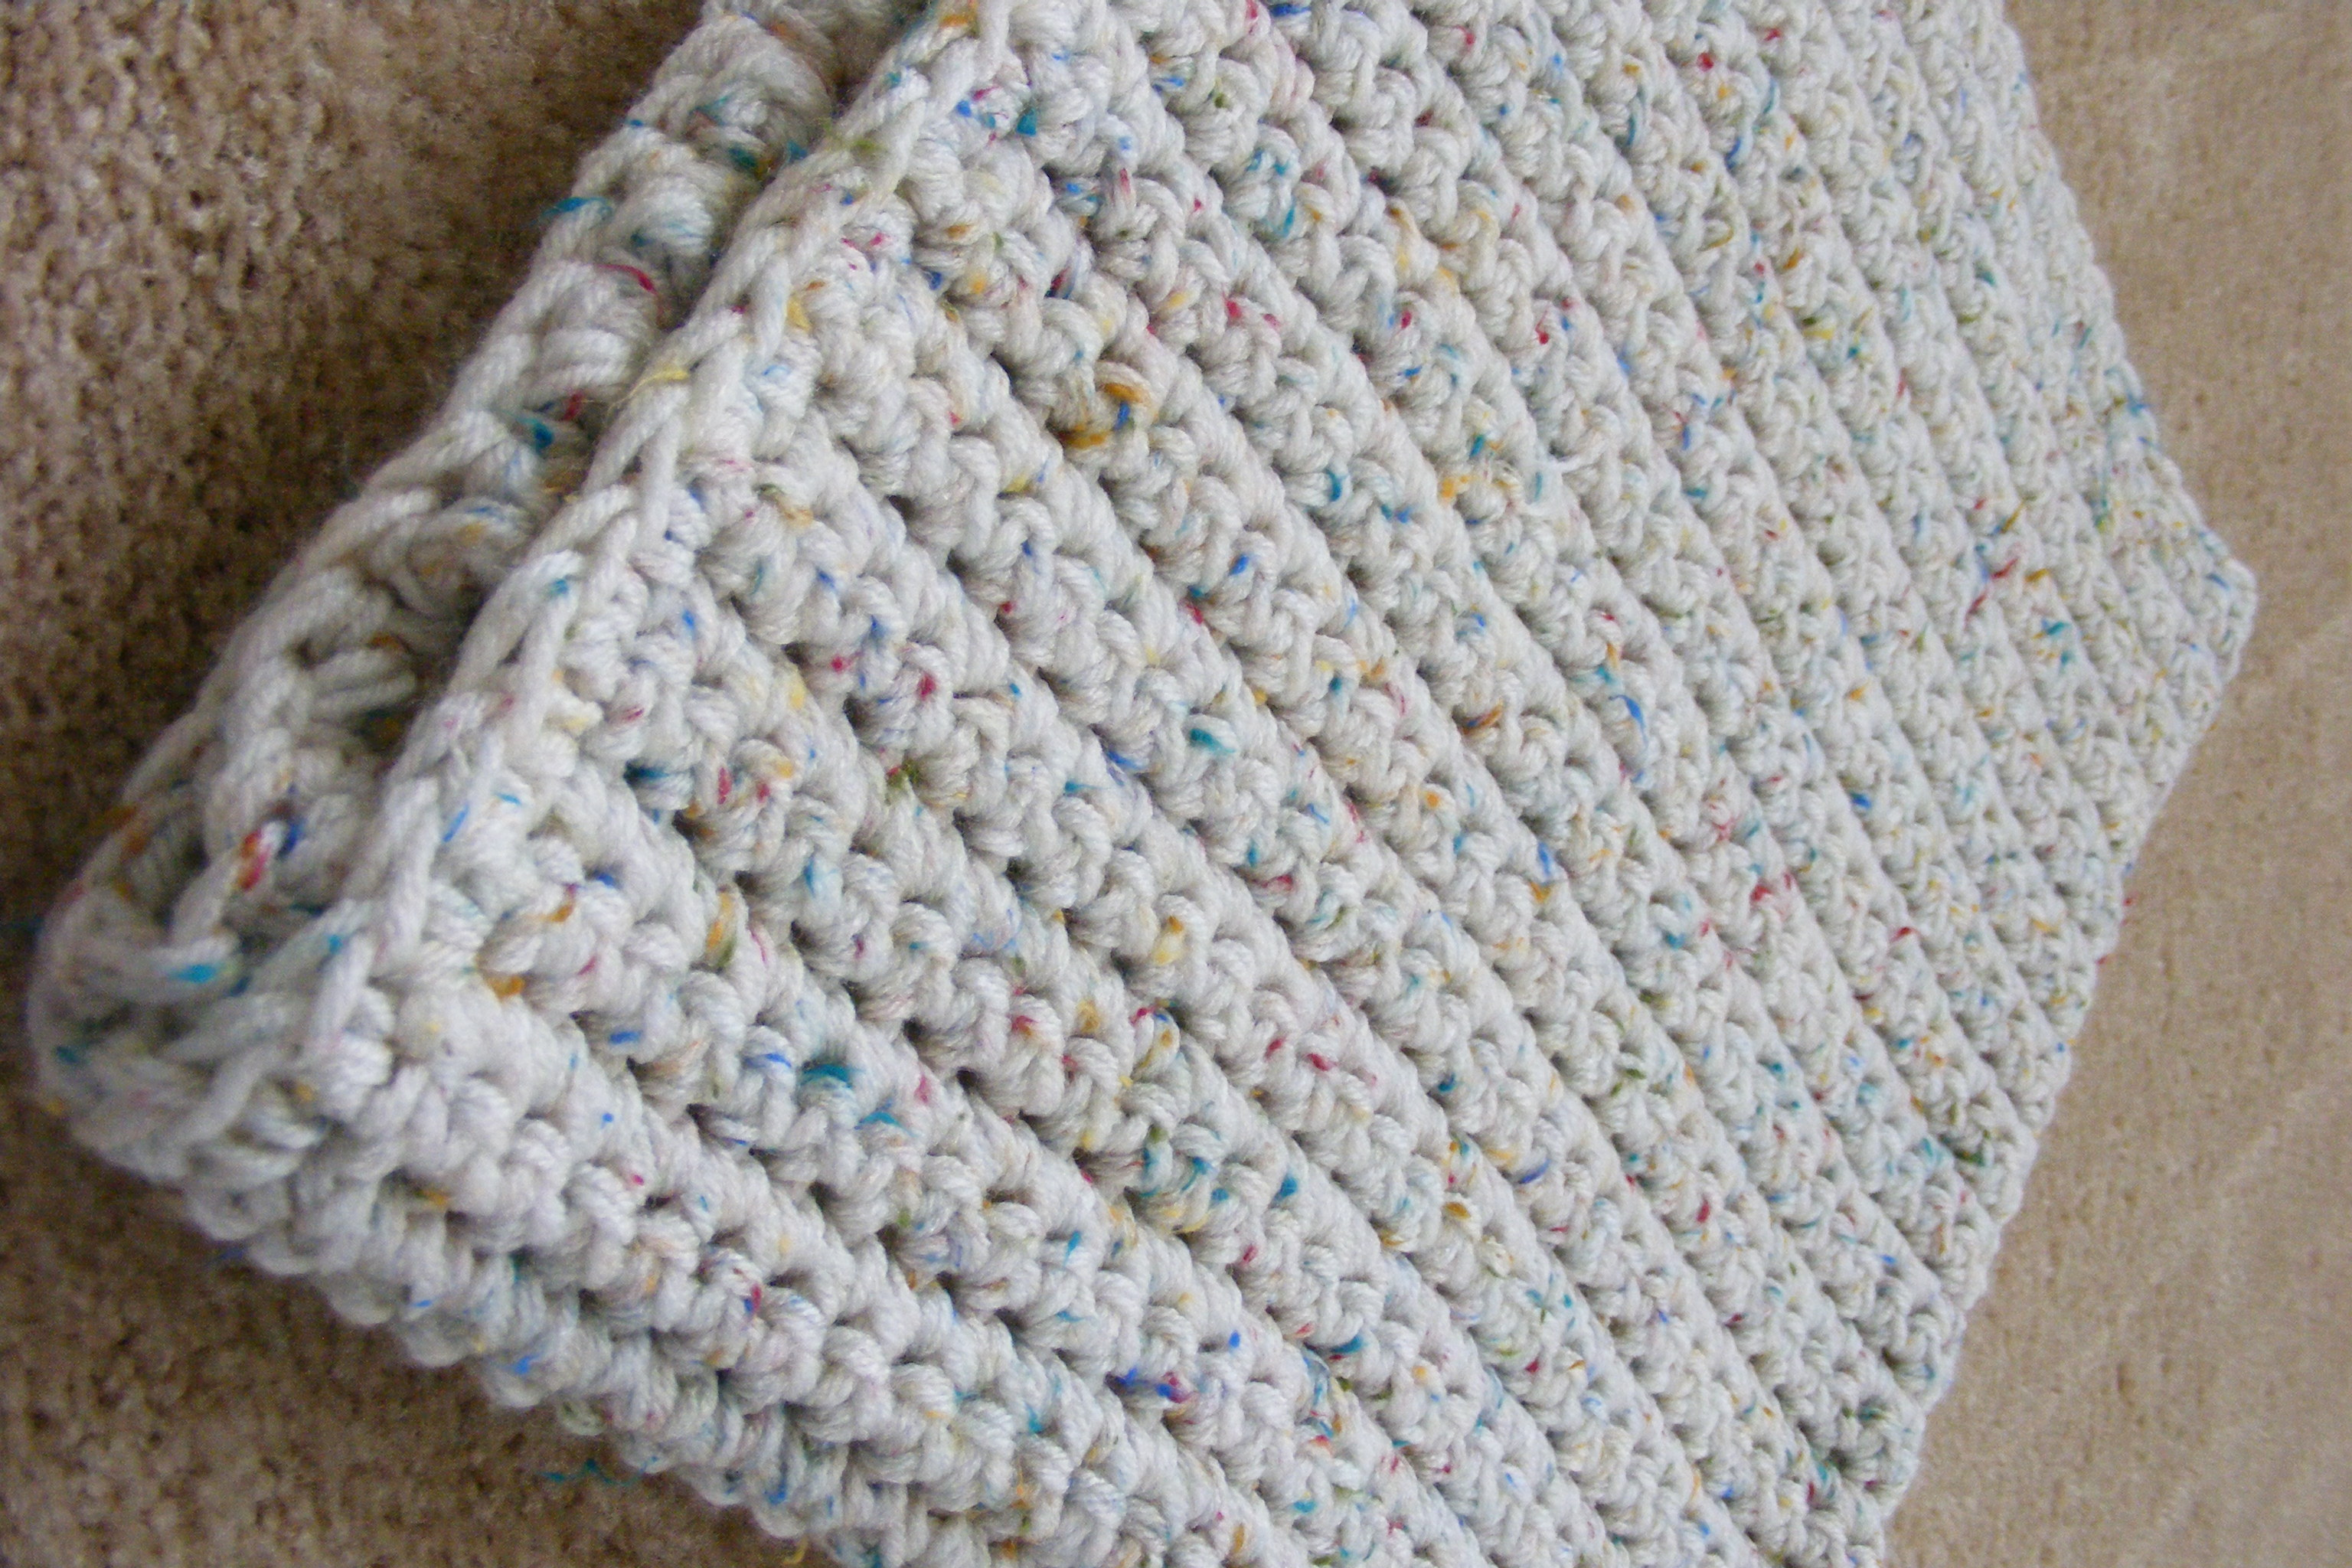 Different Crochet Patterns Baby Blanket : baby blanket crochet patterns free easy crochet patterns ...